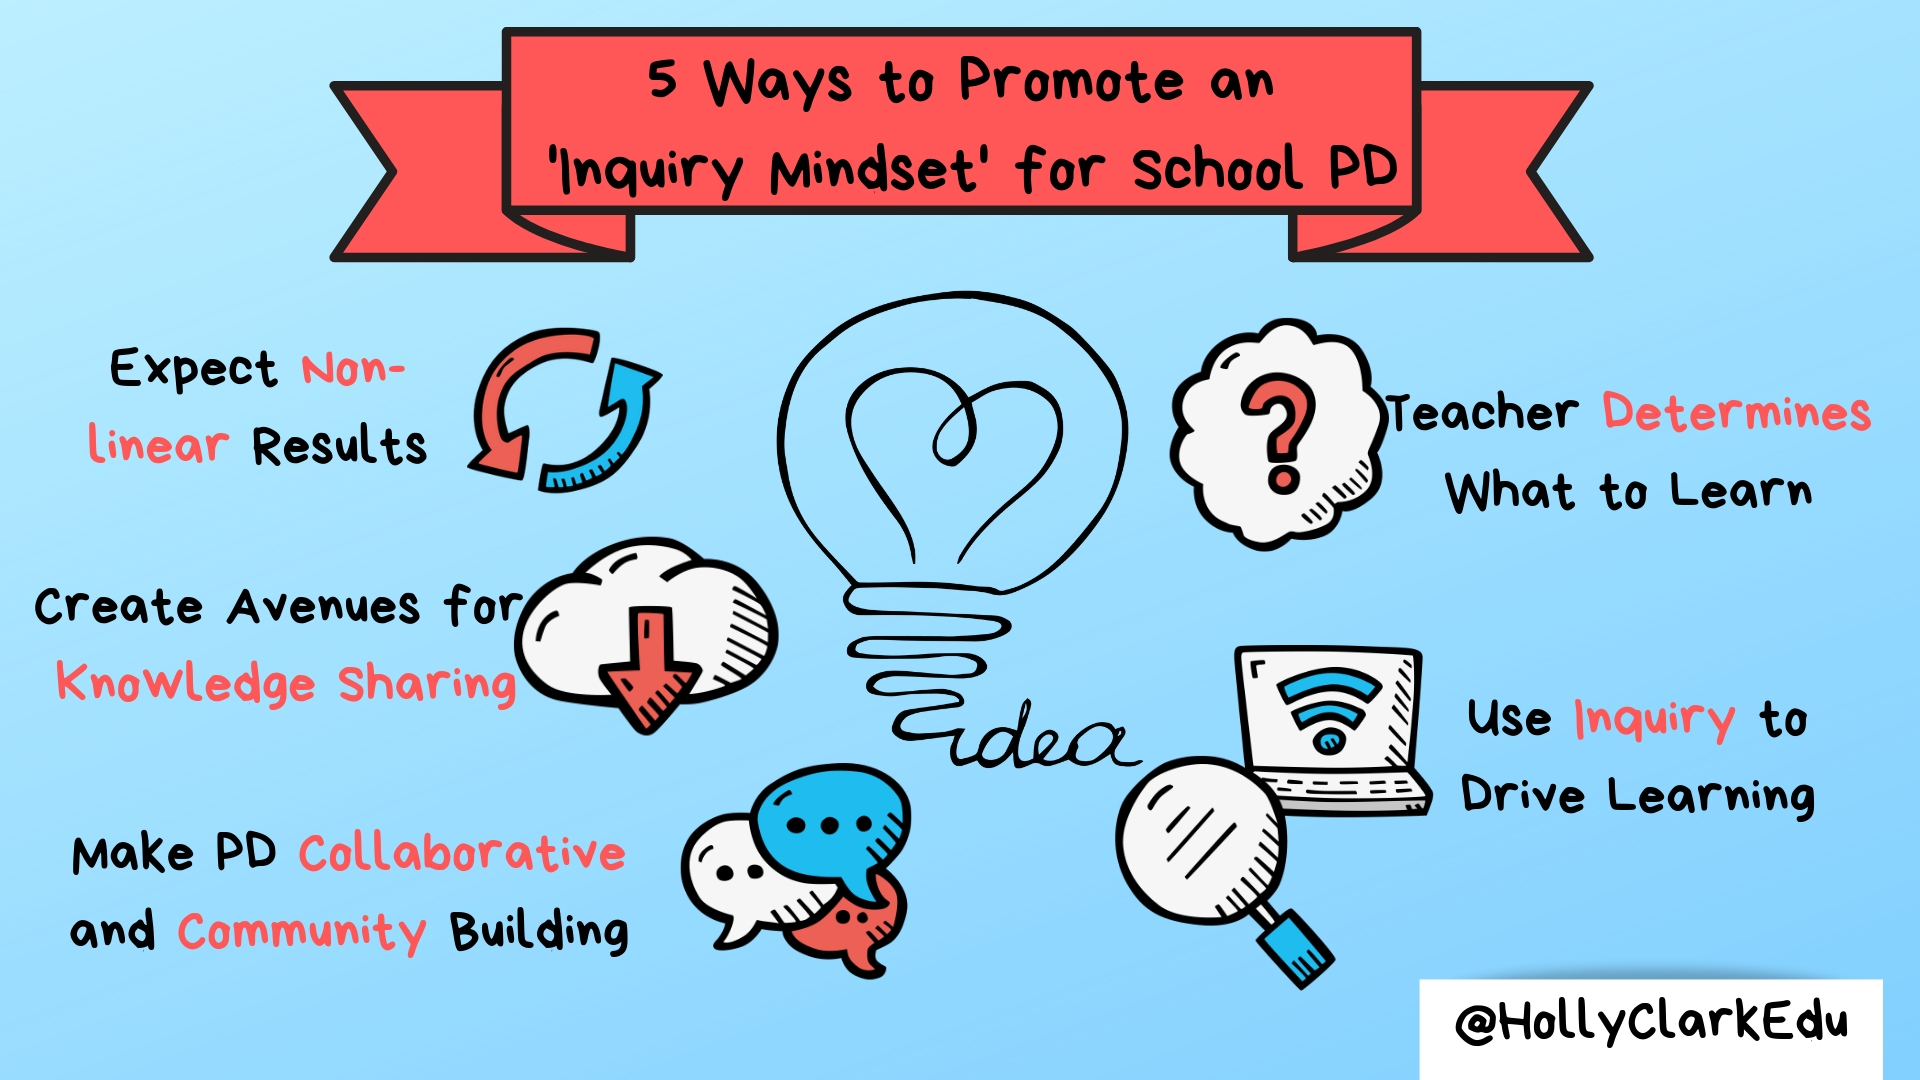 The Notion Of A Student Inquiry Mindset Has Become Very En Vogue In Educational Circles Lately Based Learning Is Effectively Defined By